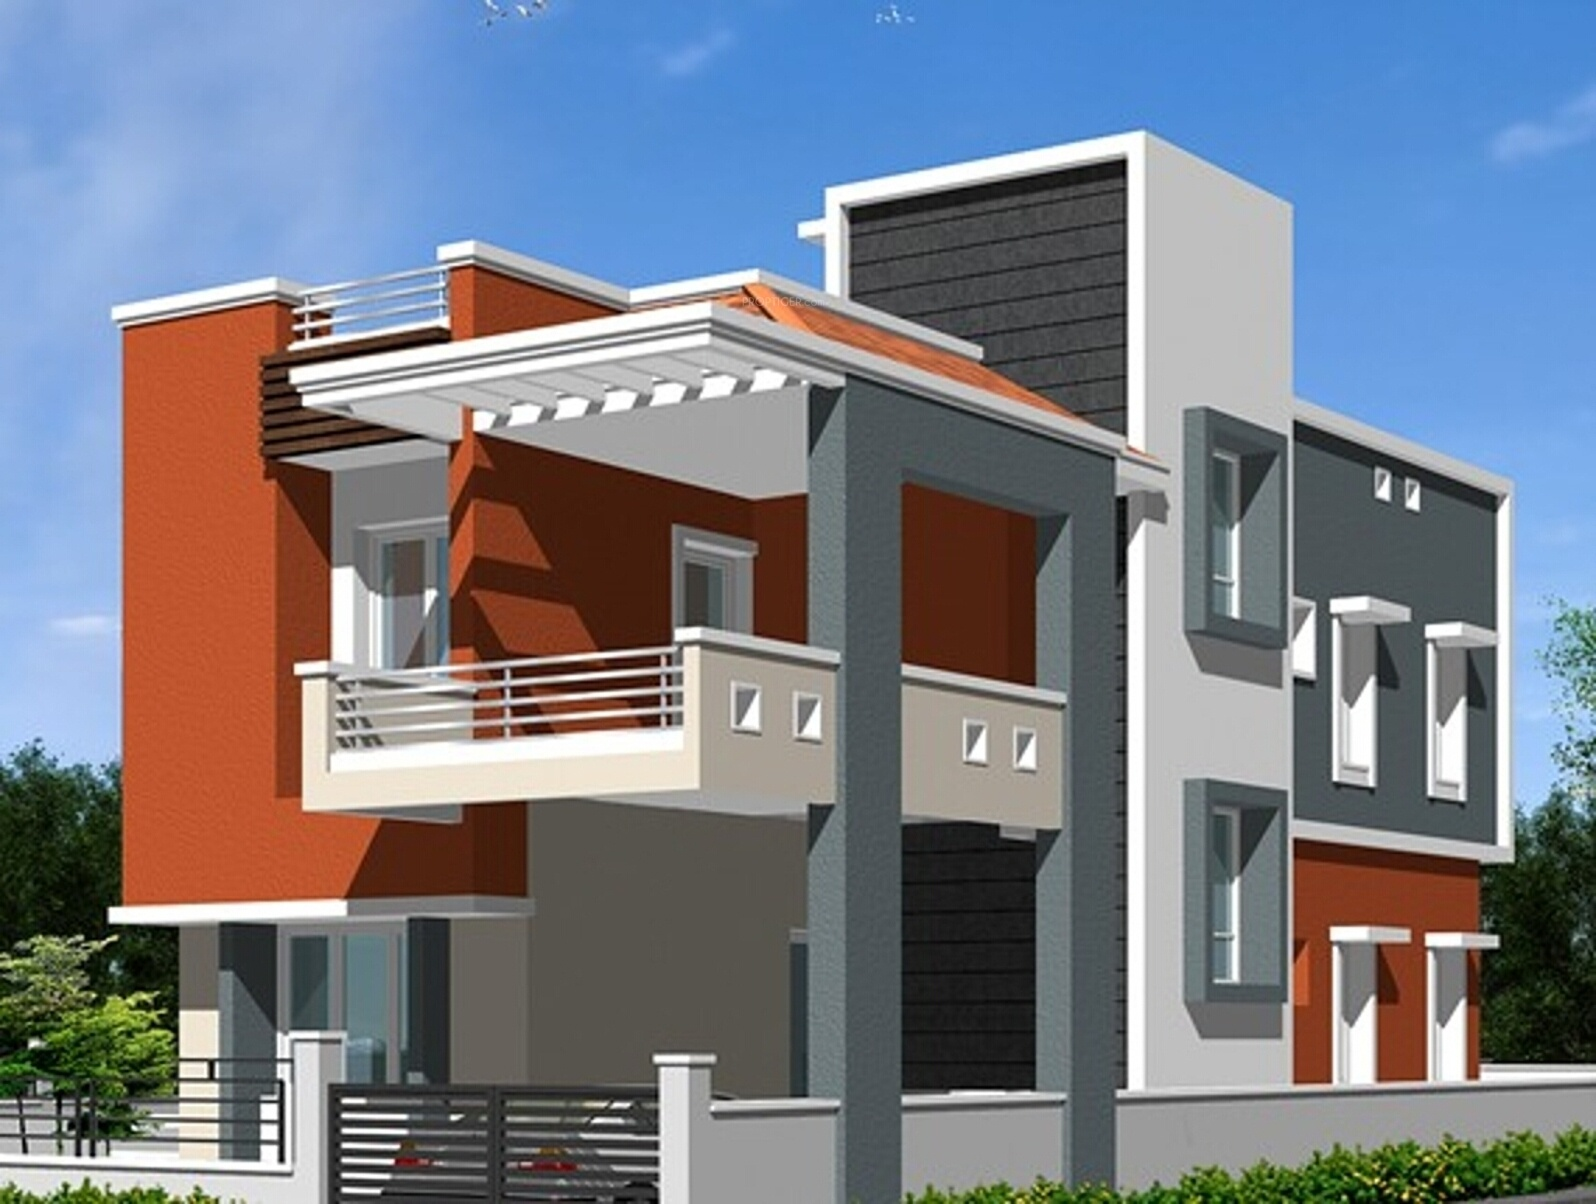 Building Front Elevation Designs Chennai : Main elevation image of kk builders chennai shanthi